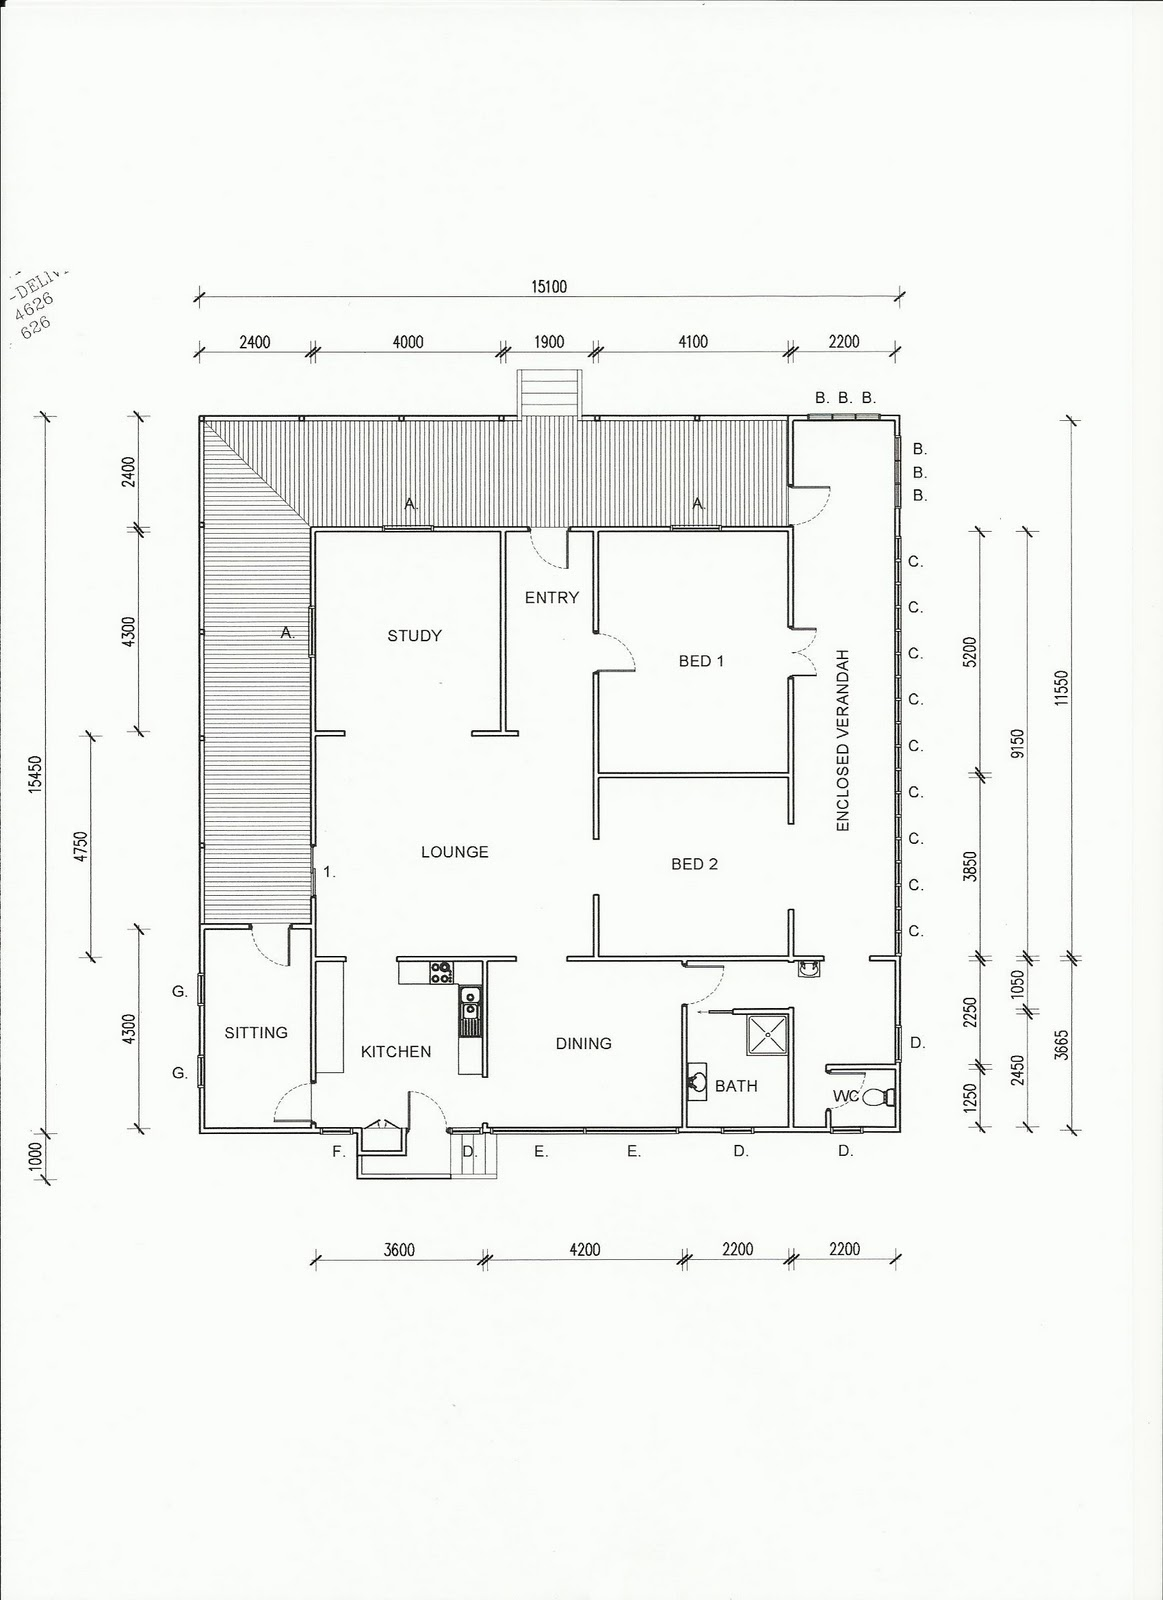 Queenslander floor plans detailed floor plans of tv for Queenslander floor plans